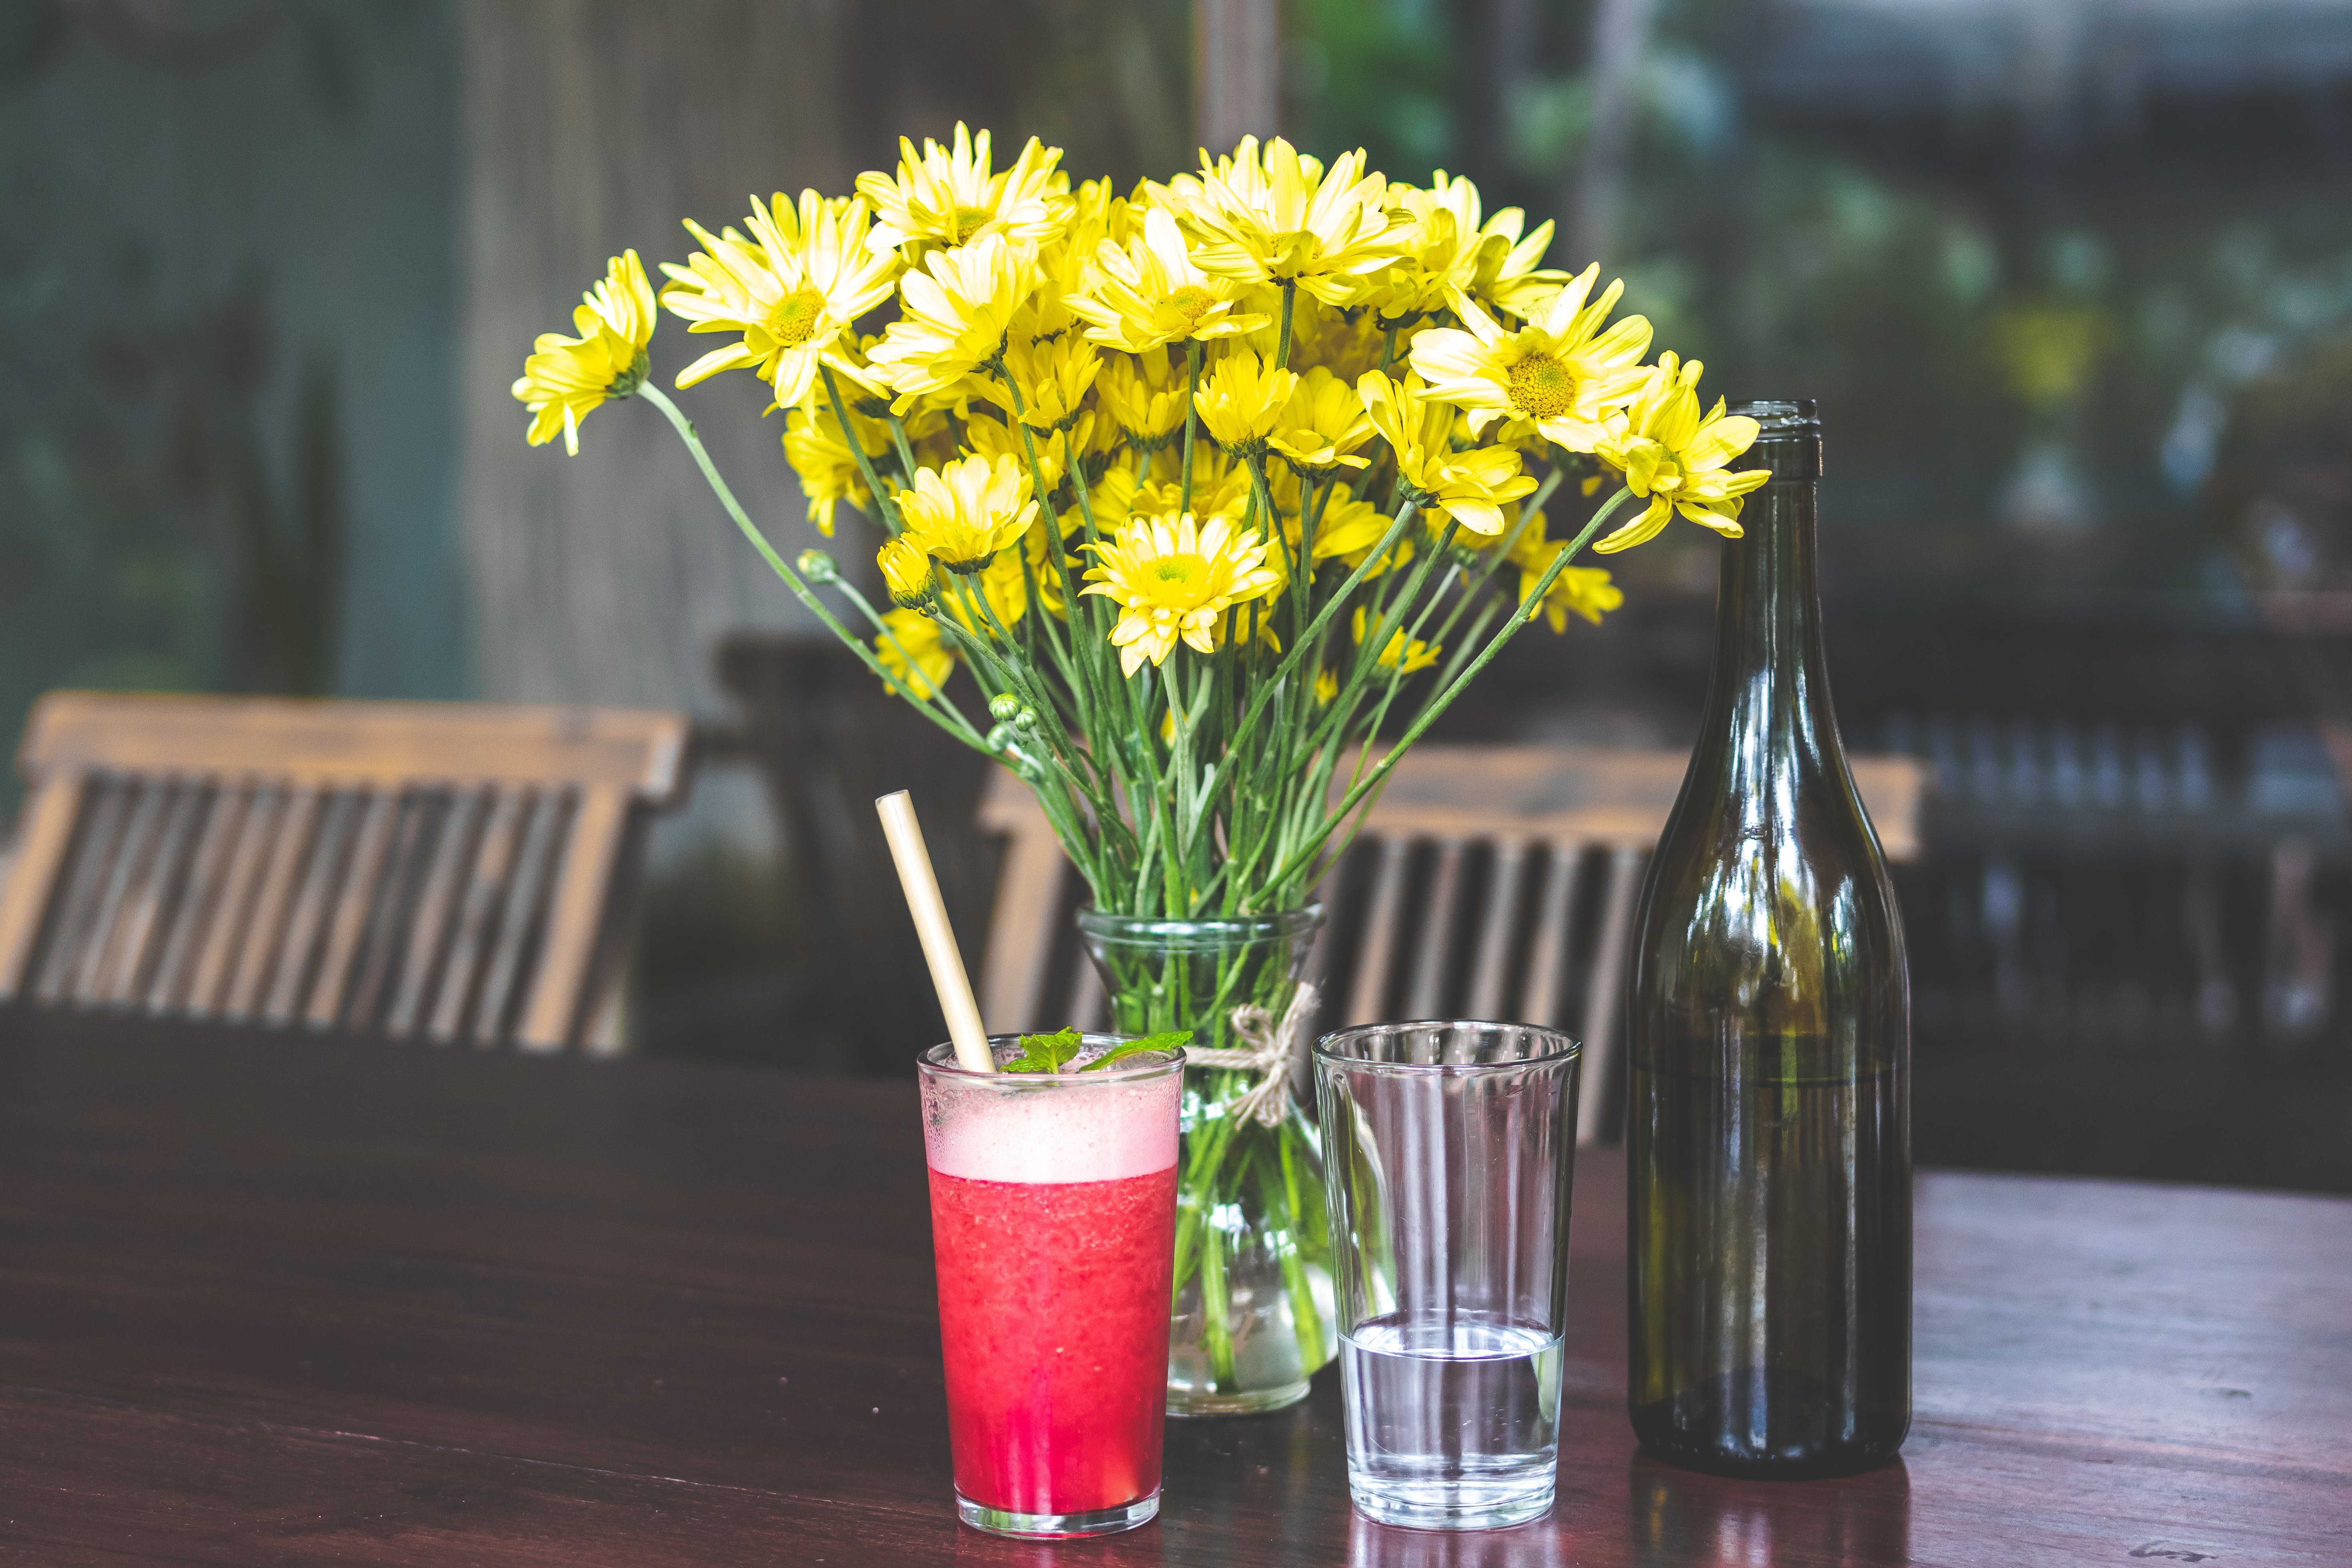 Yellow Daises in Clear Glass Vase Beside Bottle